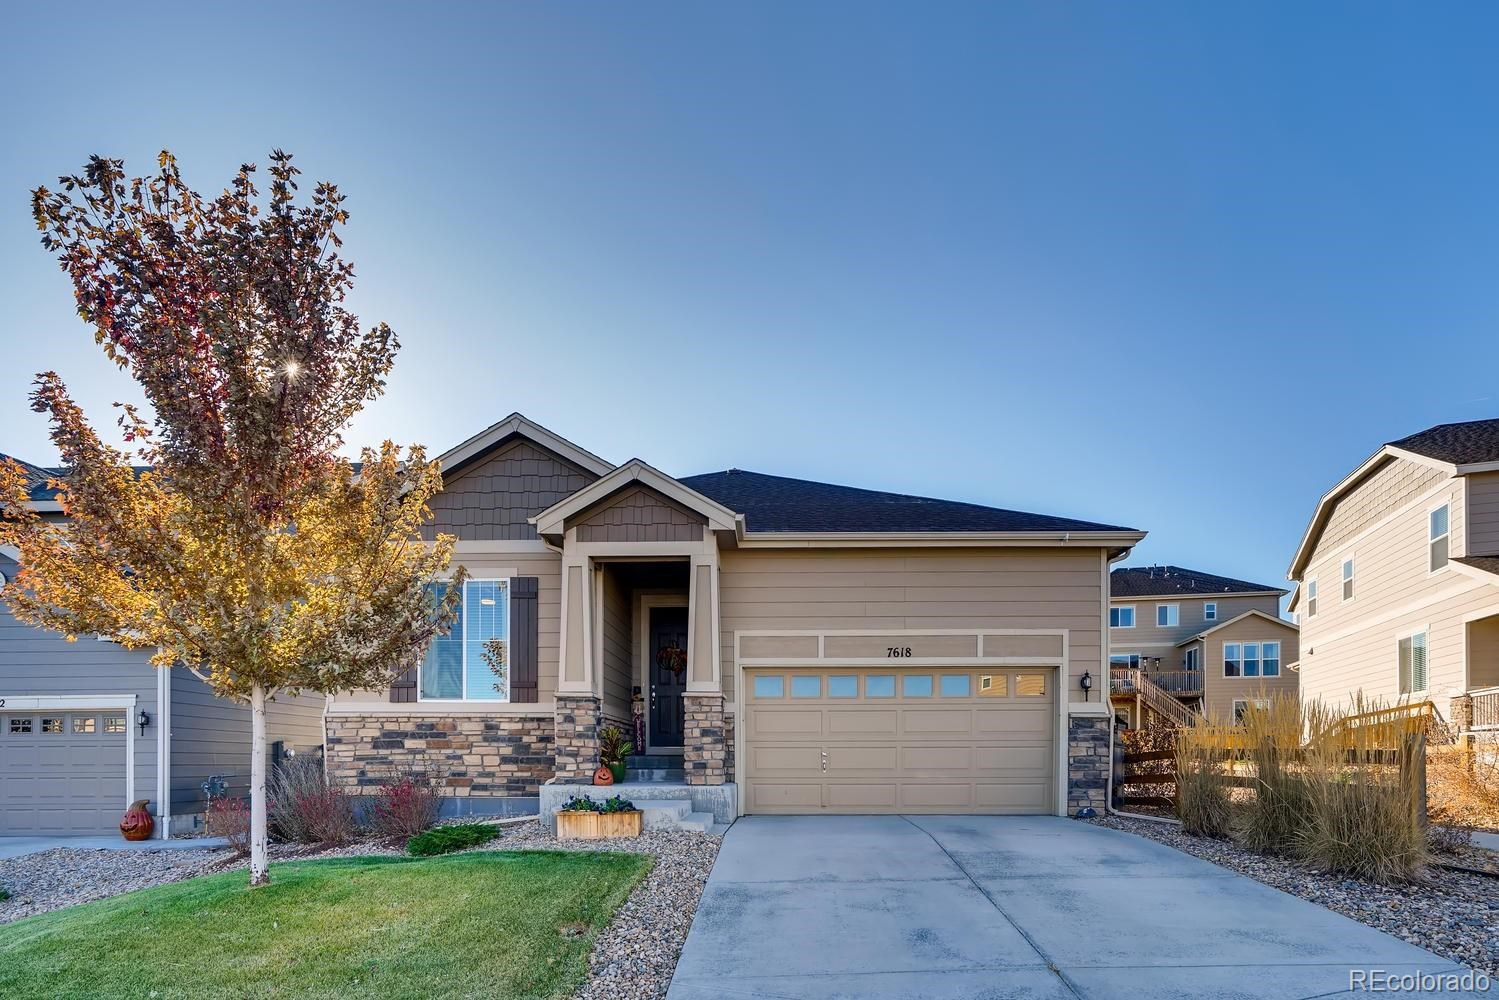 MLS# 5328275 - 7618 Blue Water Lane, Castle Rock, CO 80108